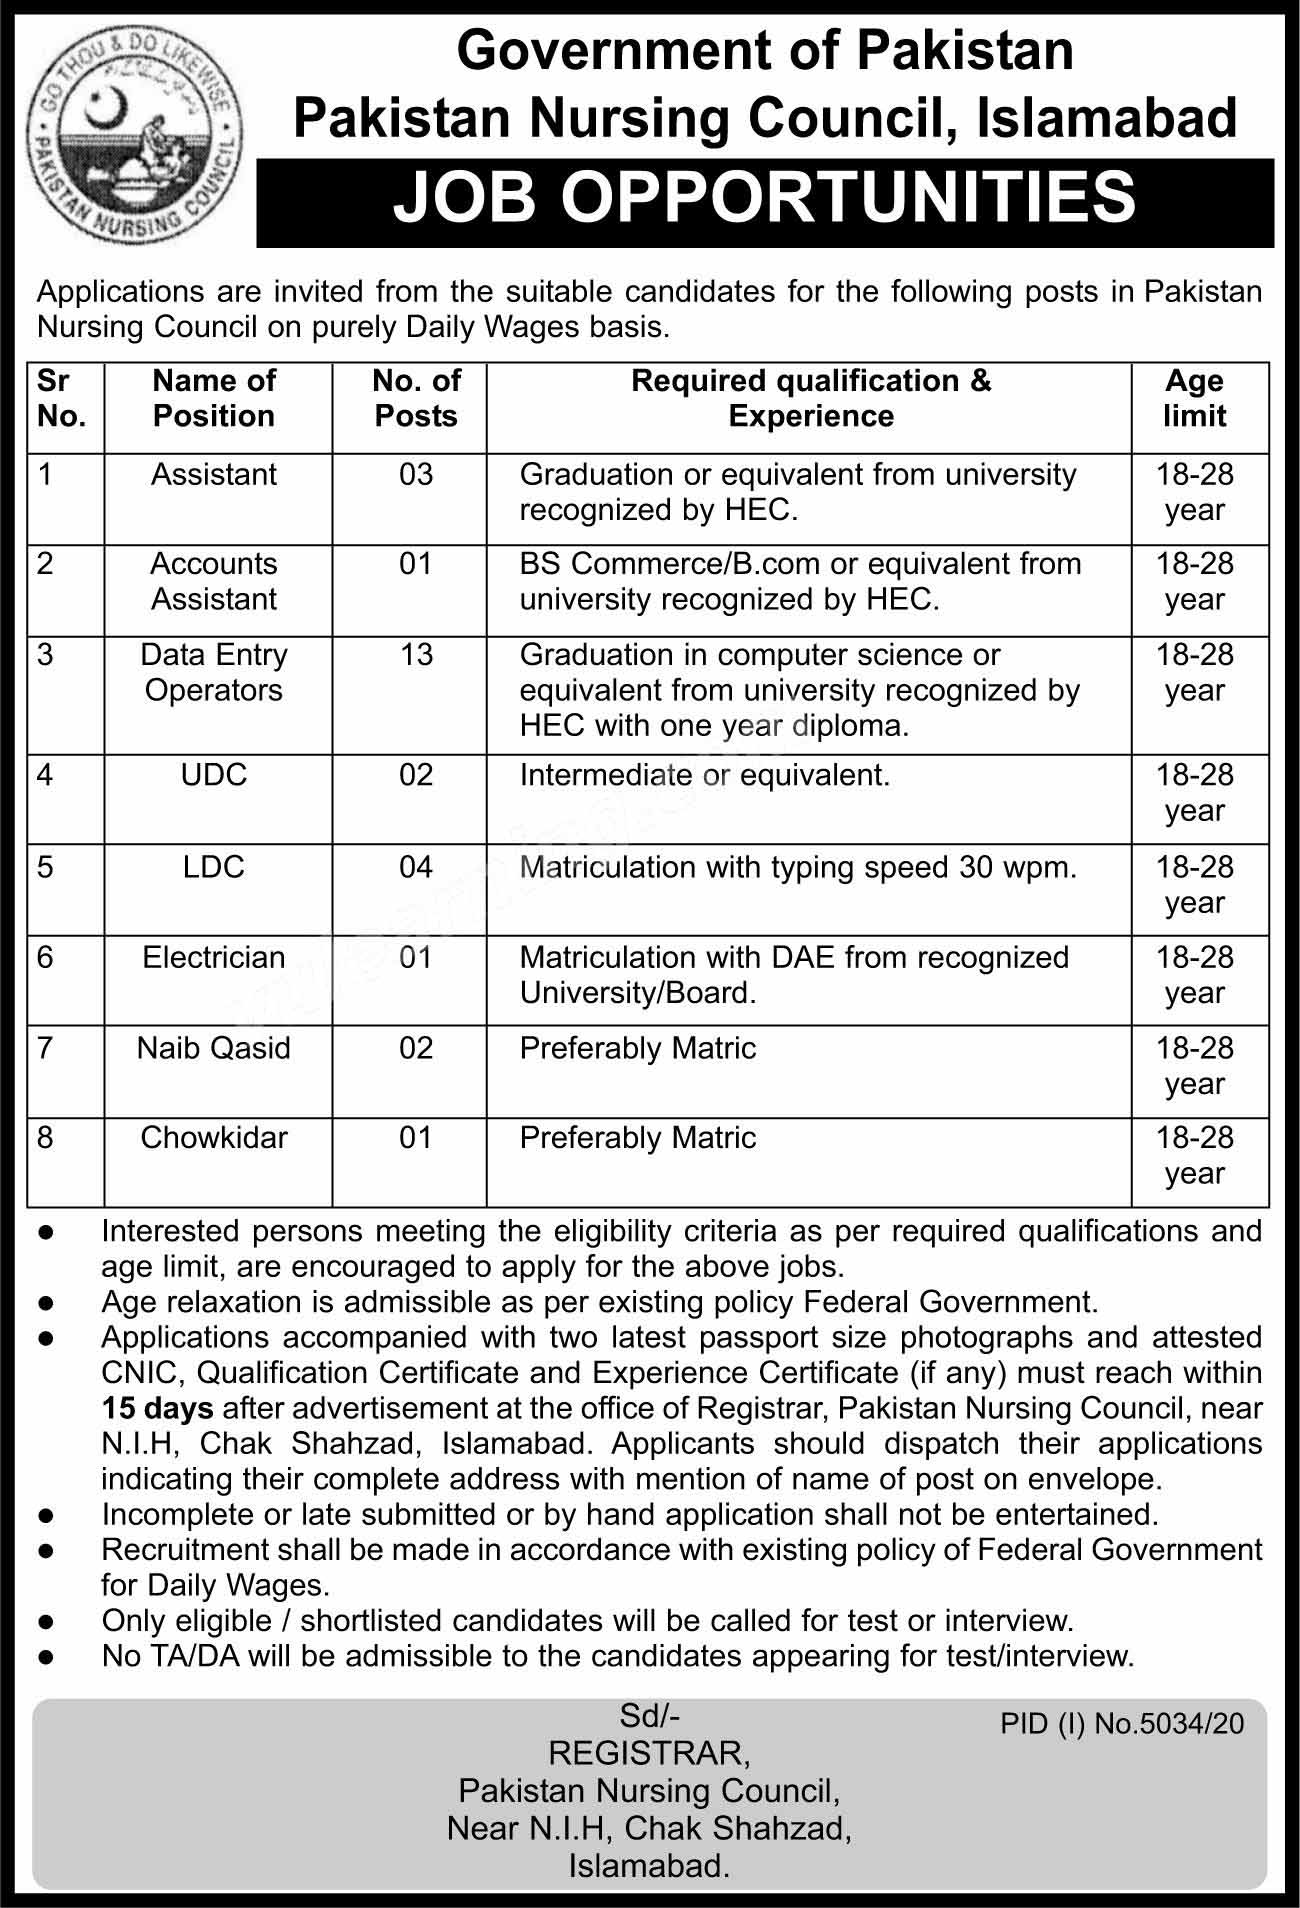 Pakistan Nursing Council Islamabad Assistants, LDC, Data Entry Operators, Clerks Jobs March 2021